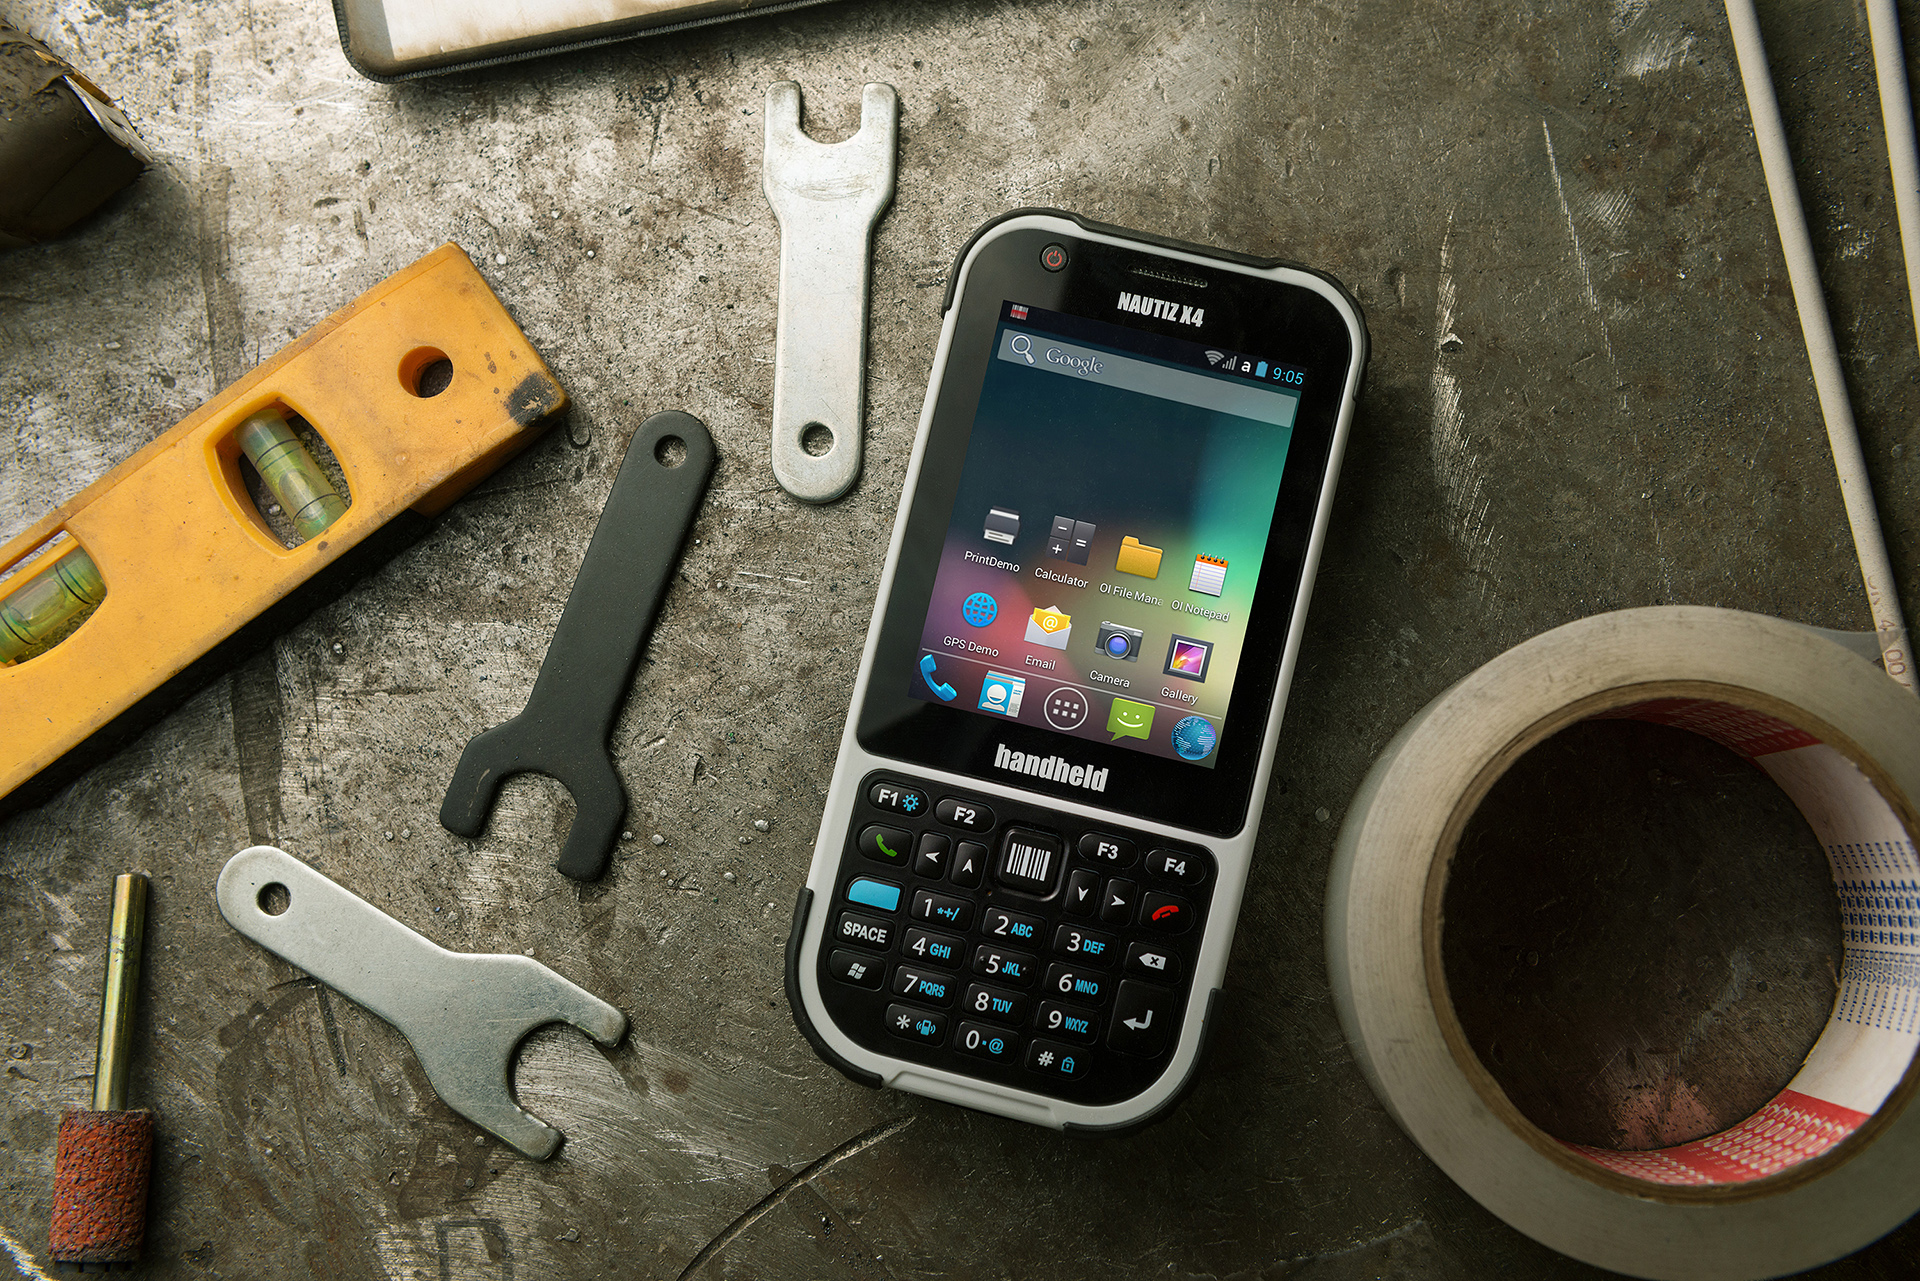 Handheld-Nautiz-X4-rugged-IP65-ANDROID.jpg